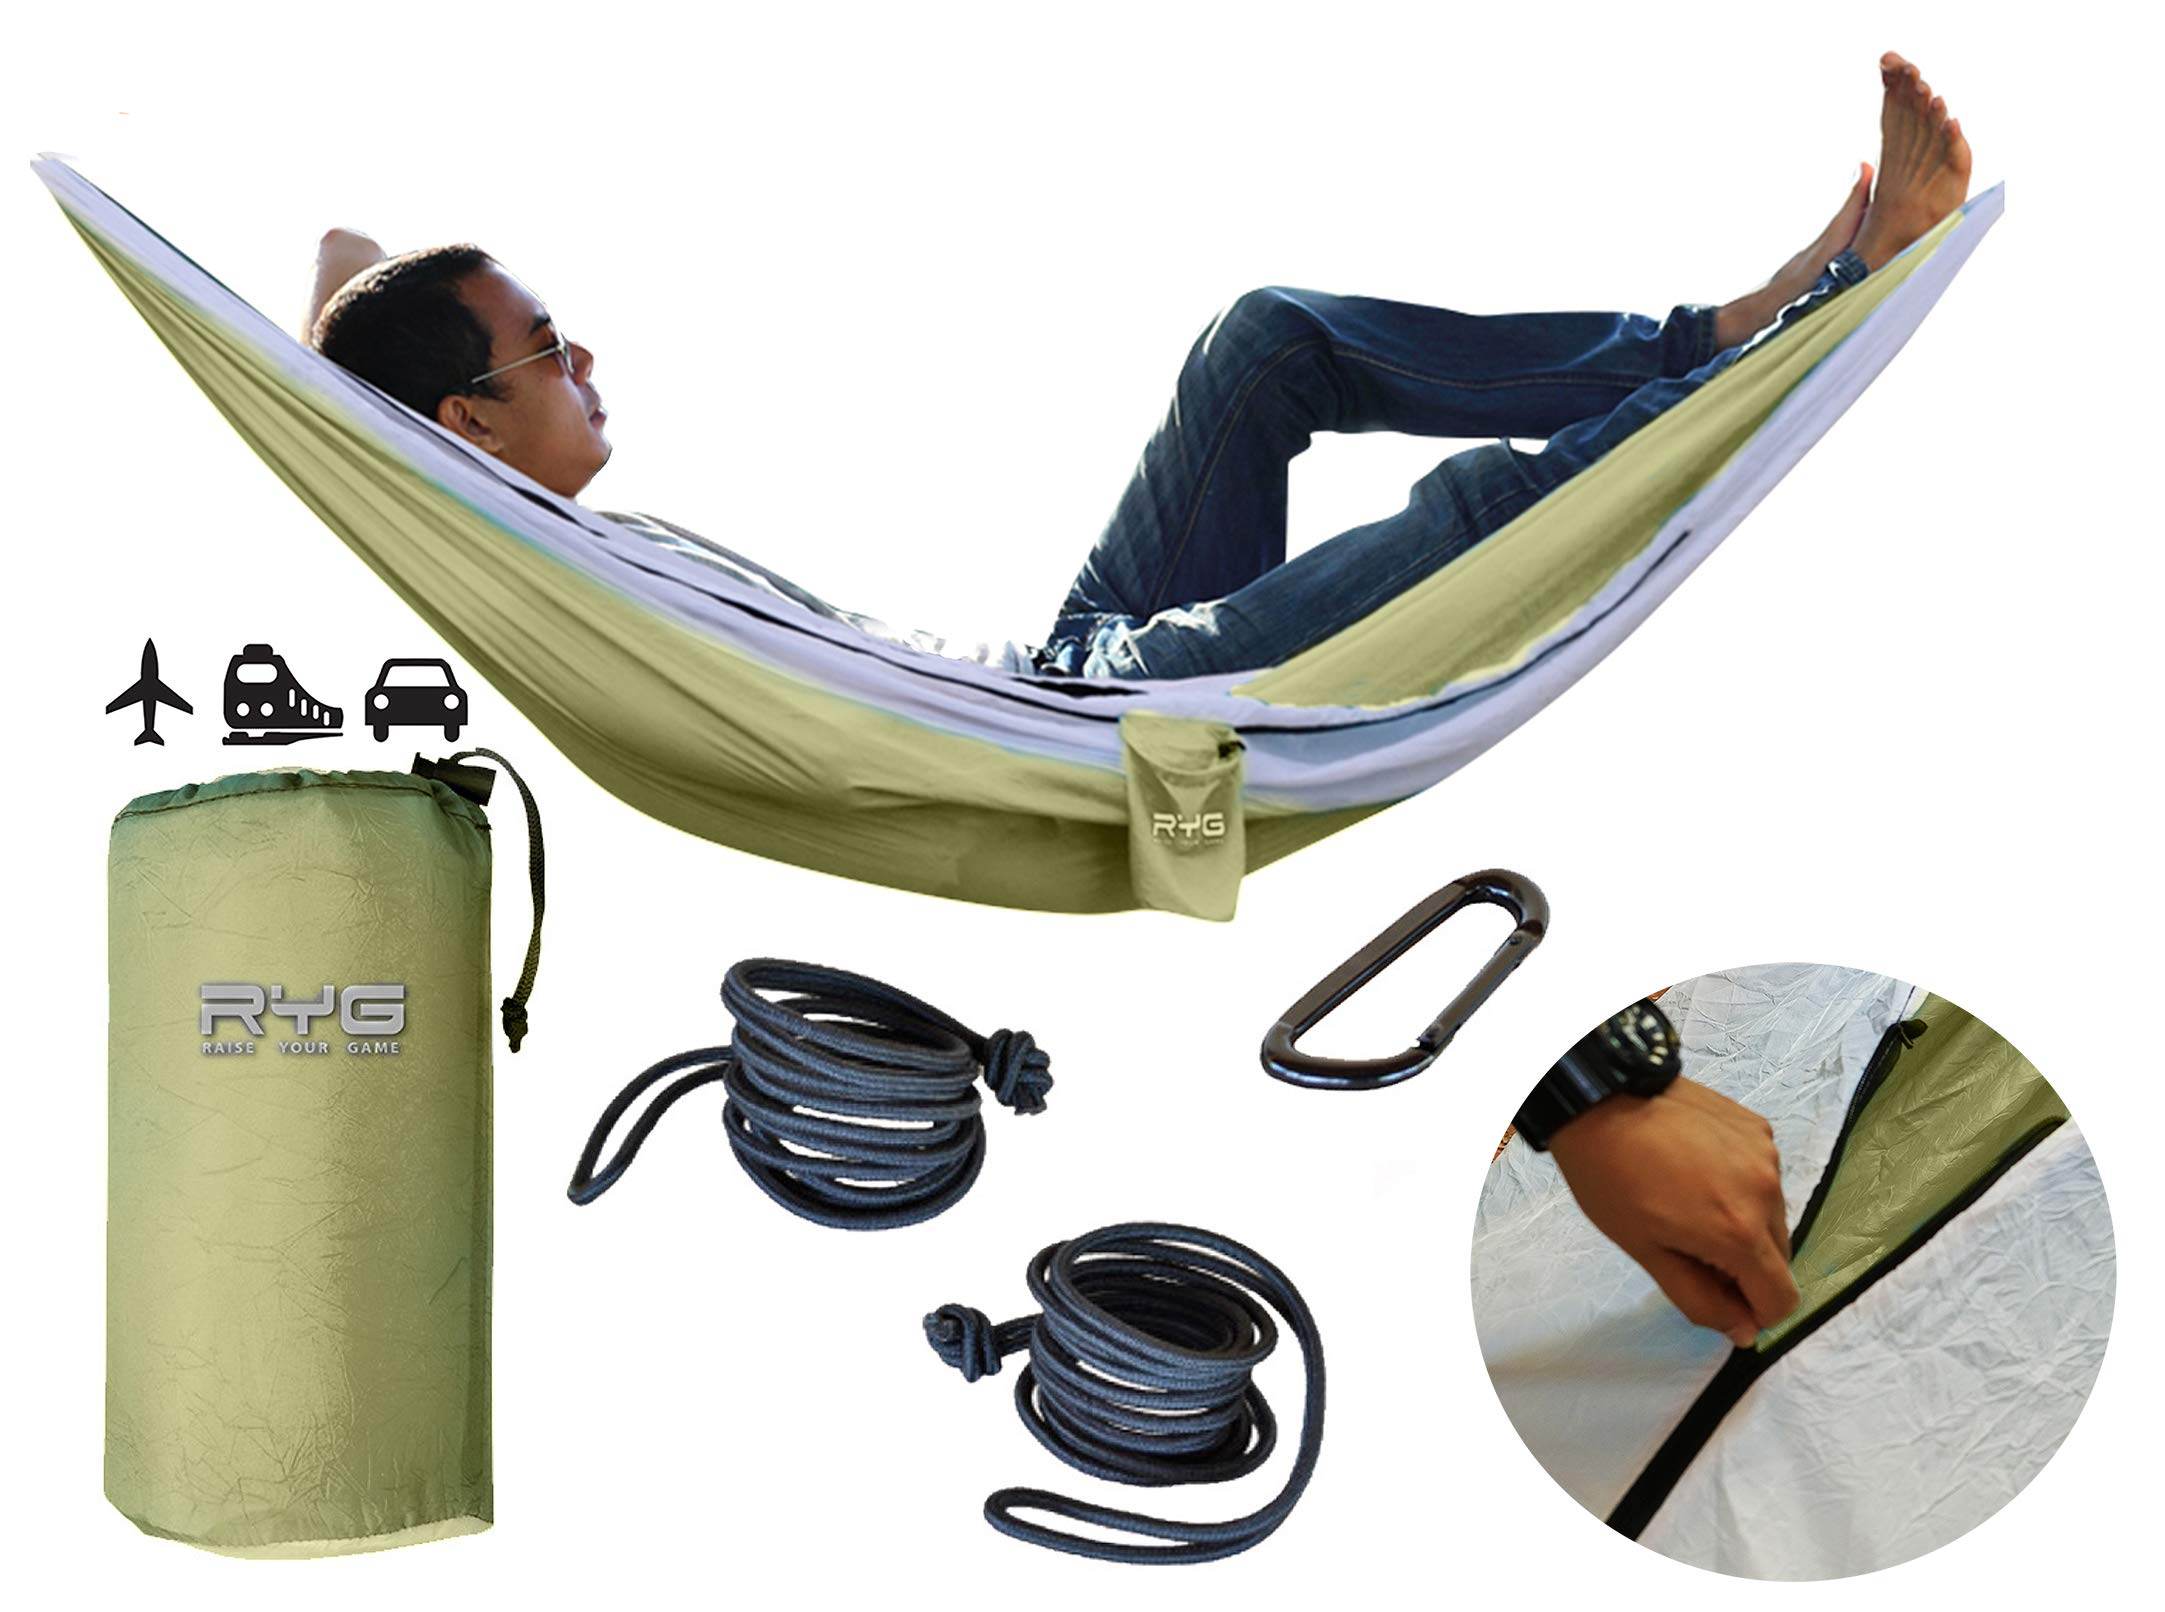 Raise Your Game RYG Portable Hammock, Heavy Duty Lightweight Parachute Quality Fabric, Indoor Outdoor Weatherproof Single & Double Hammocks, Adjustable Camping Swing for Hiking Travel (Olive Green)